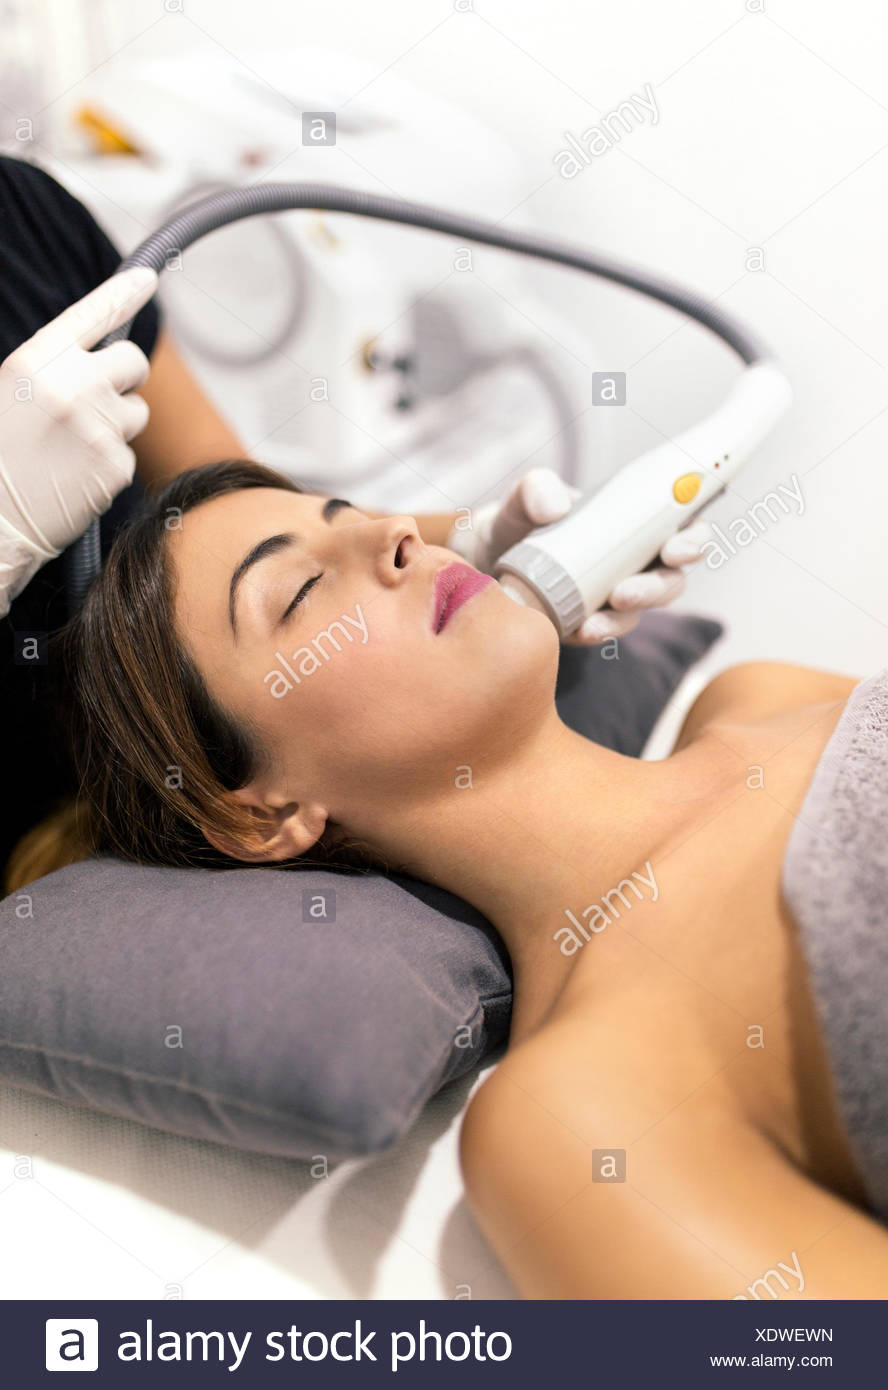 Young woman receiving a beauty treatment - Stock Image